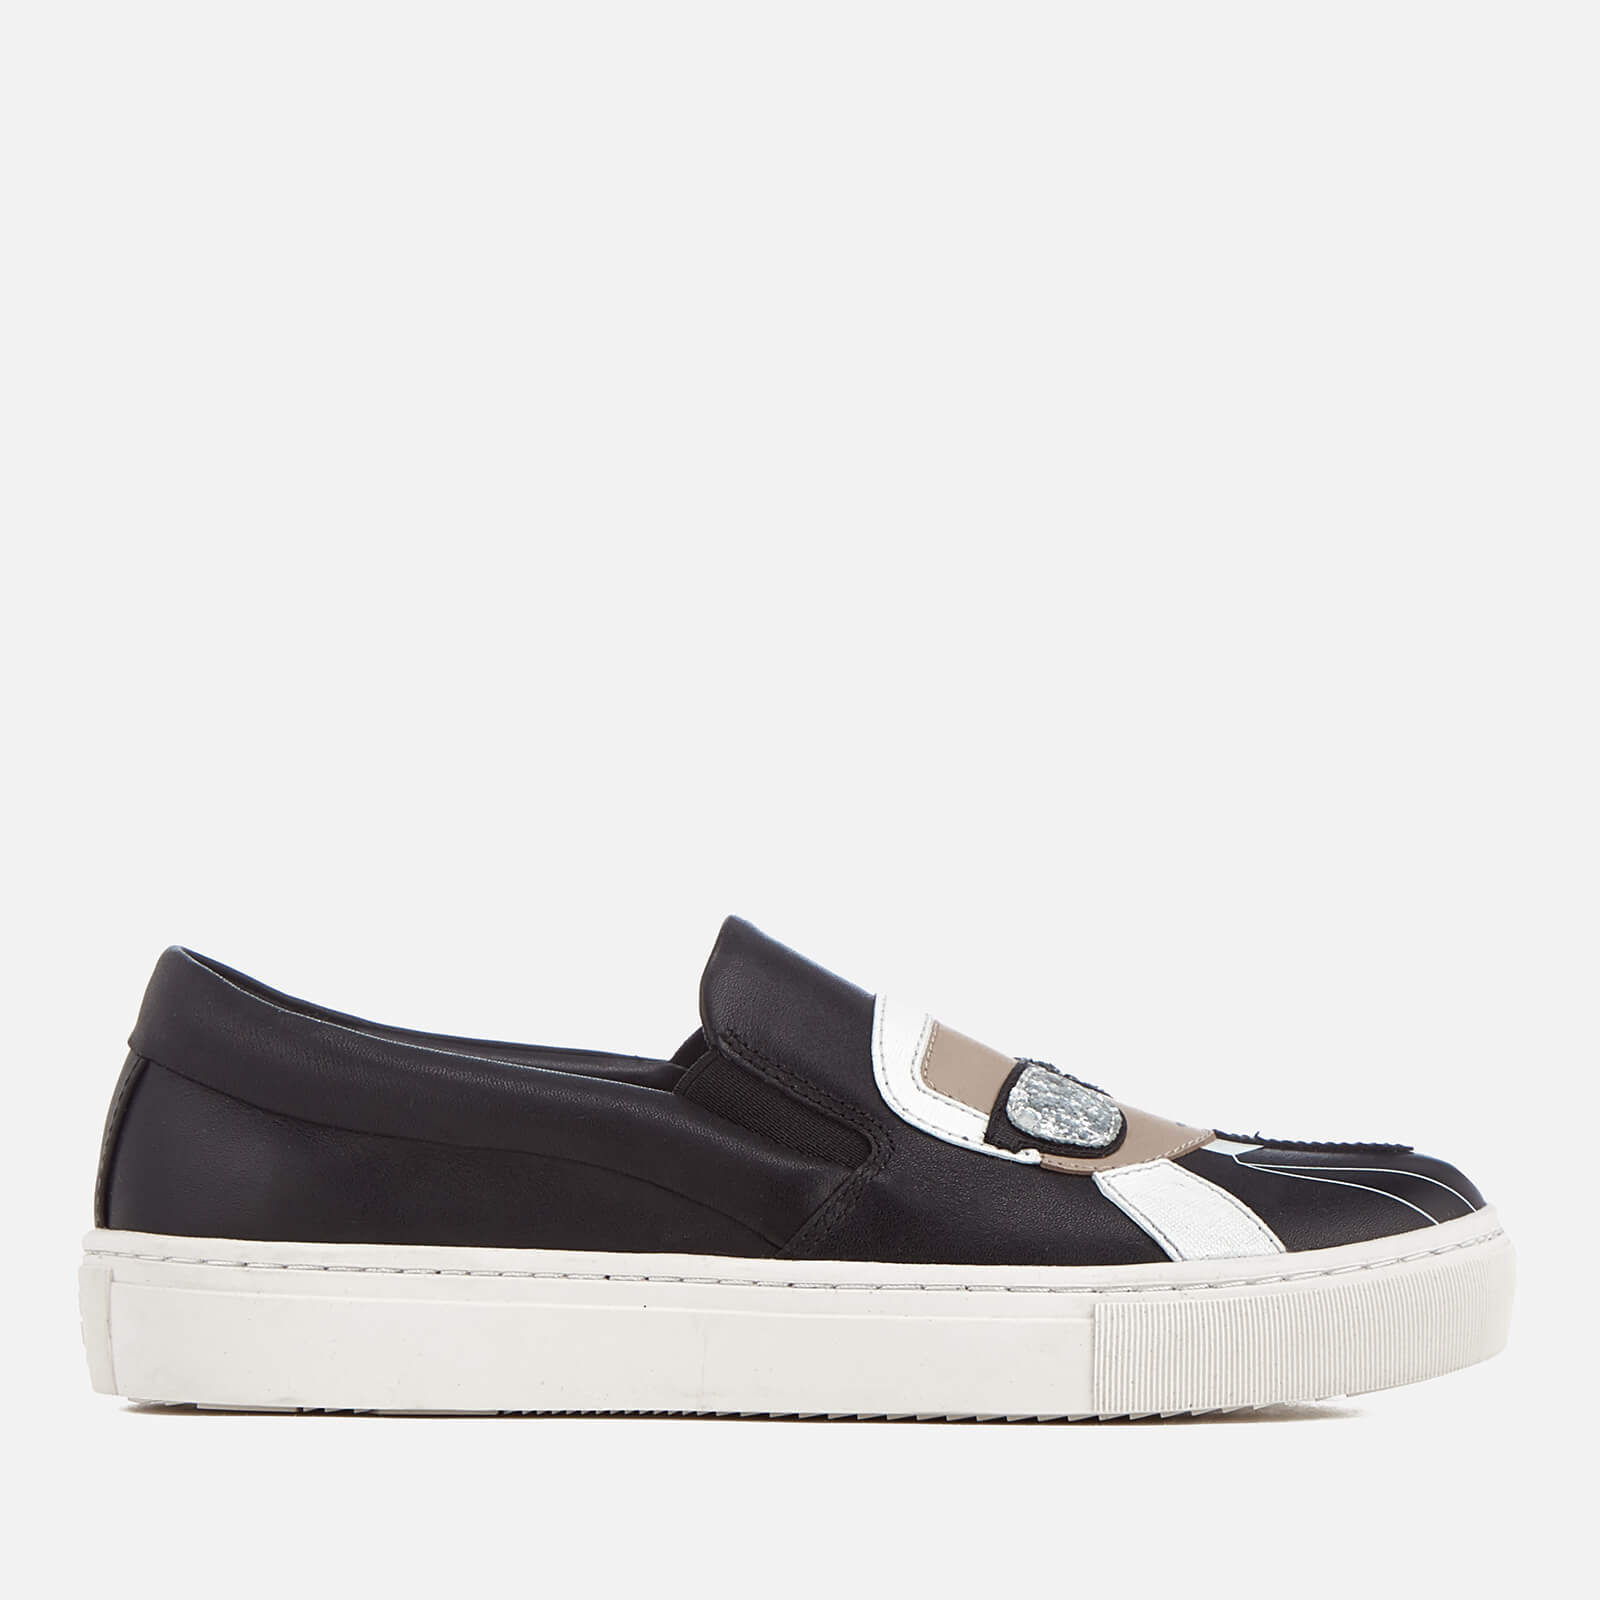 Karl Lagerfeld Women's Kupsole Leather Karl Ikonic Slip-On Trainers - Black